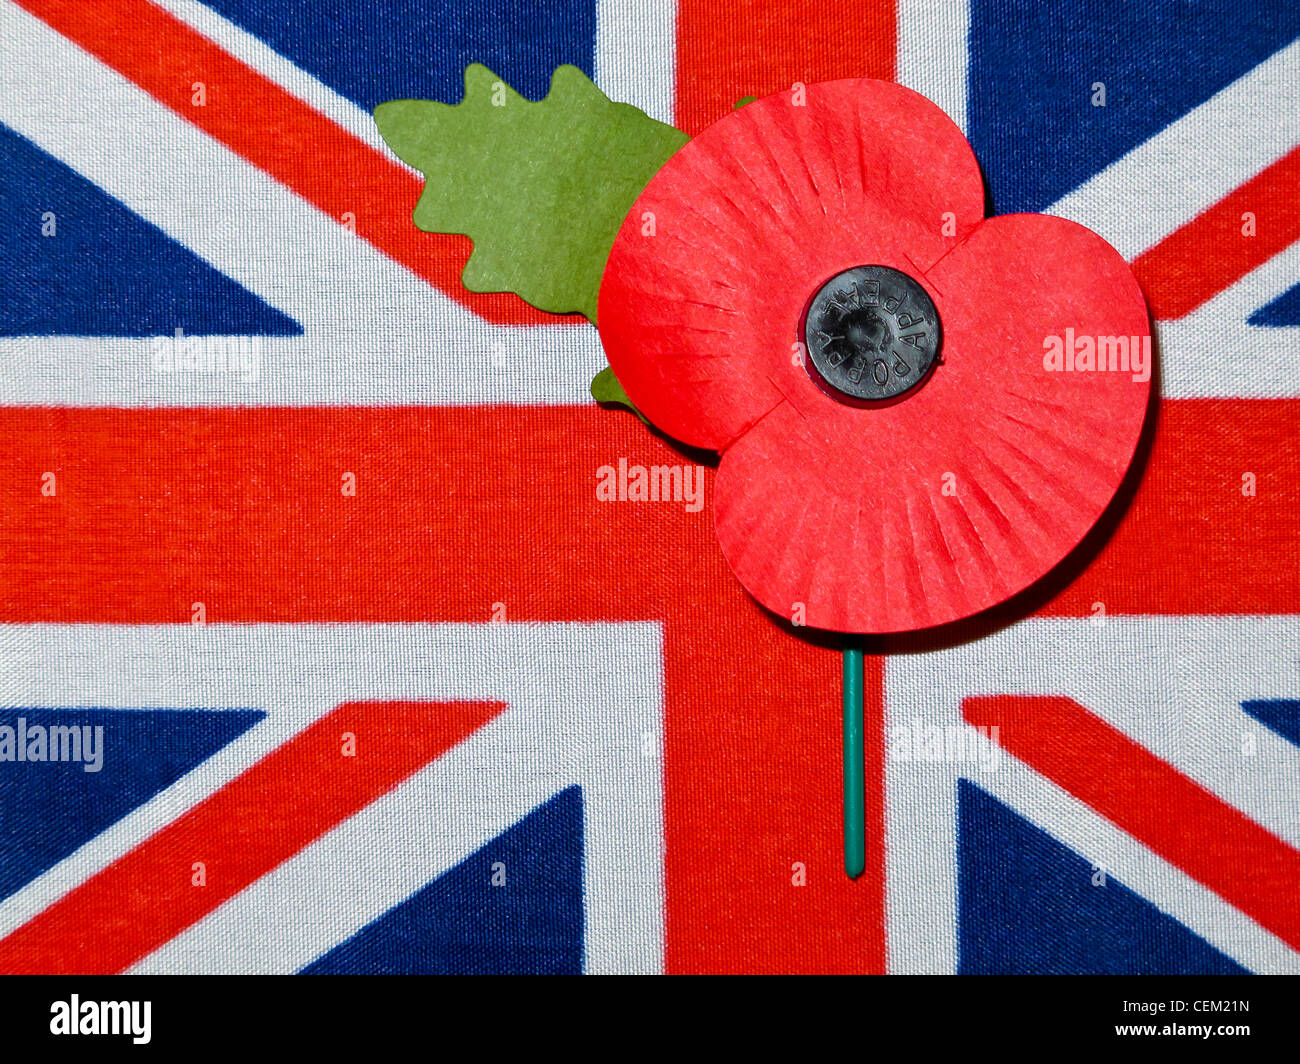 A small Union Jack flag with a rememberance poppy - Stock Image